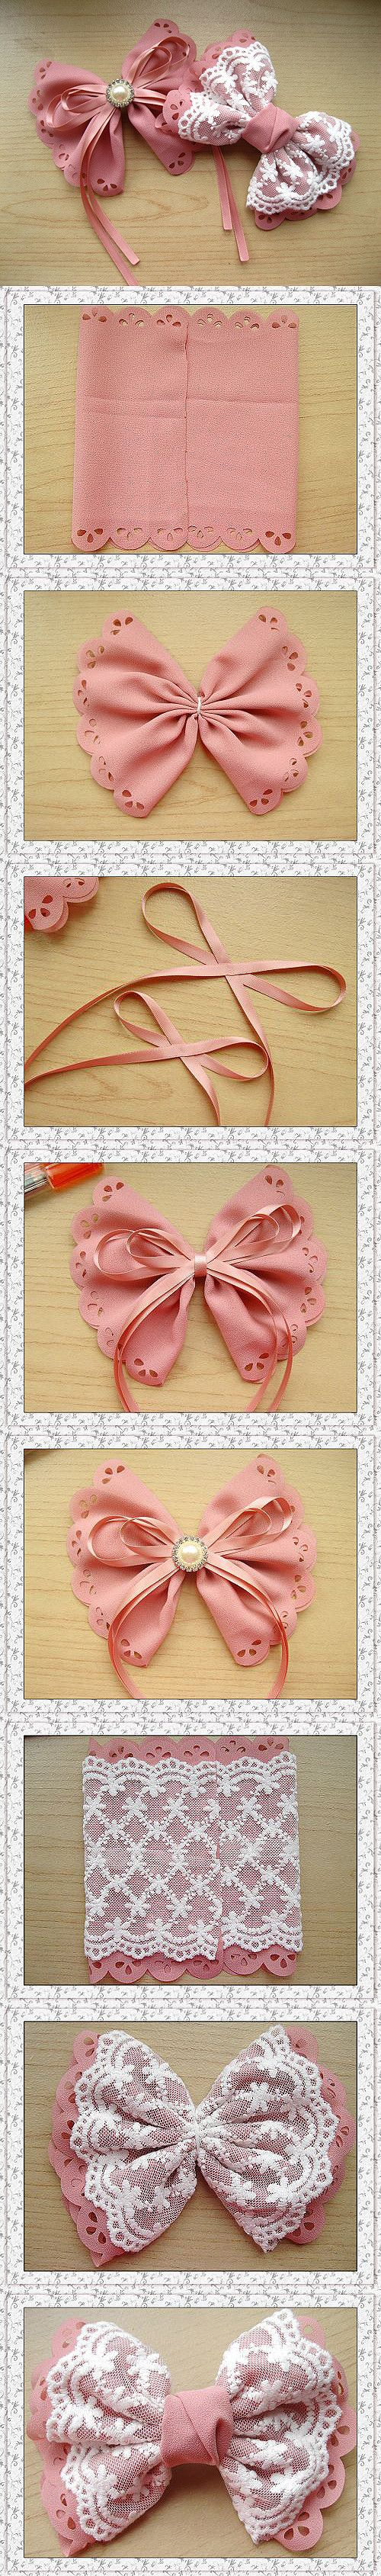 Hairbows! I really wanna try this:)